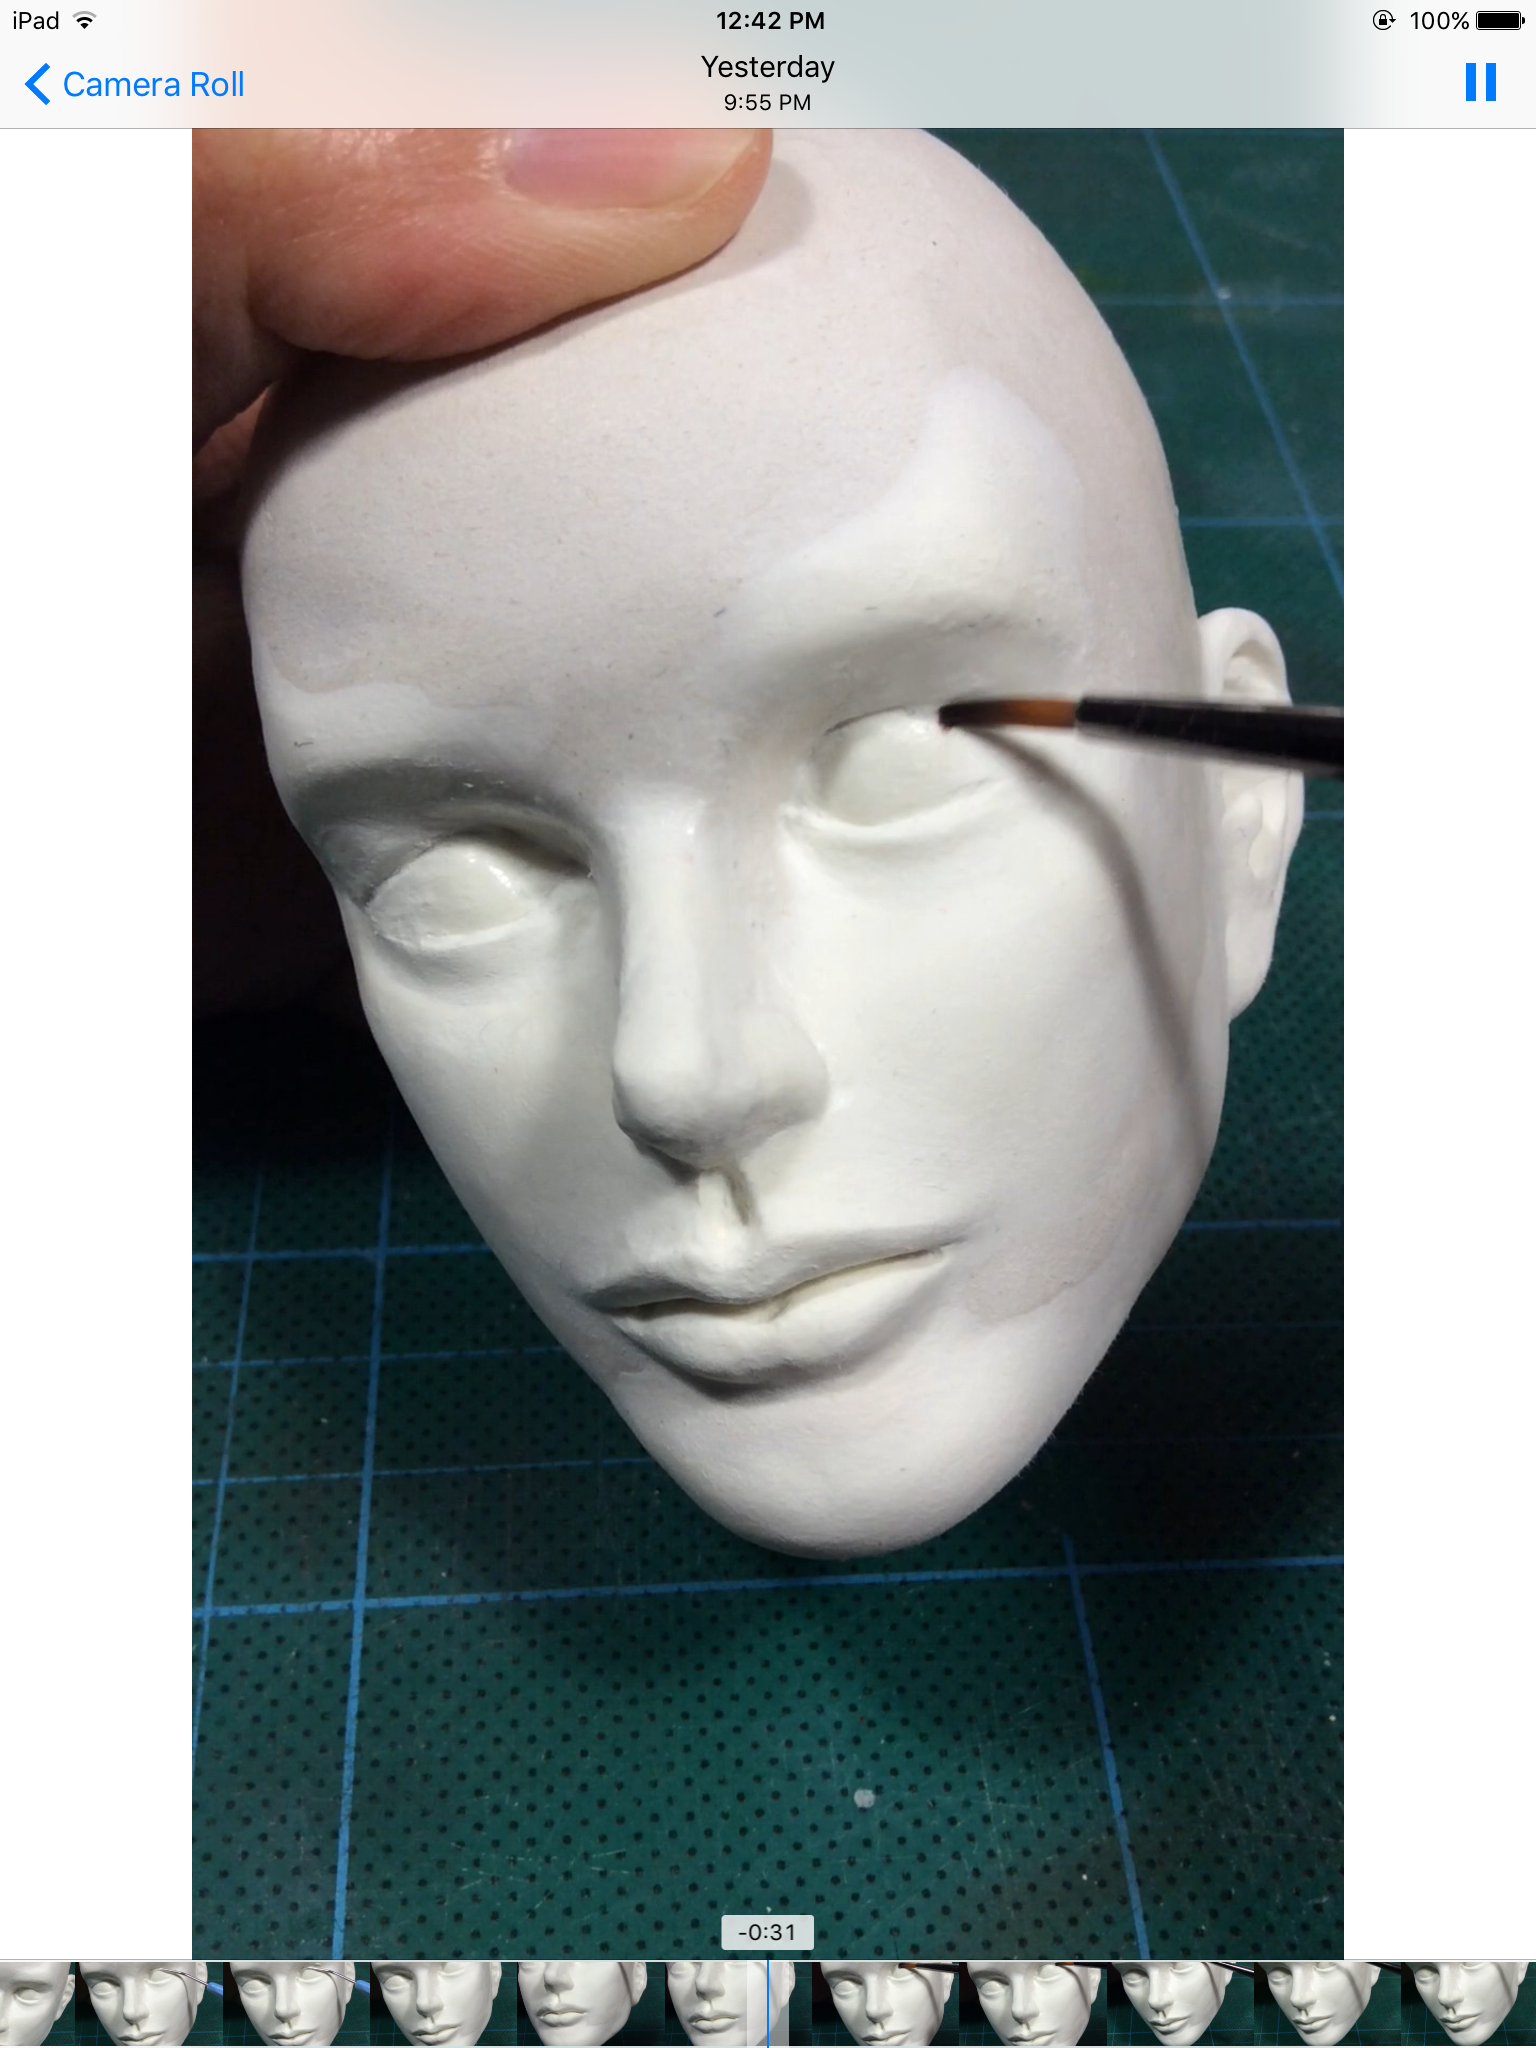 jemse---my-first-doll-head-making-progress-diary-part-3_32293338321_o